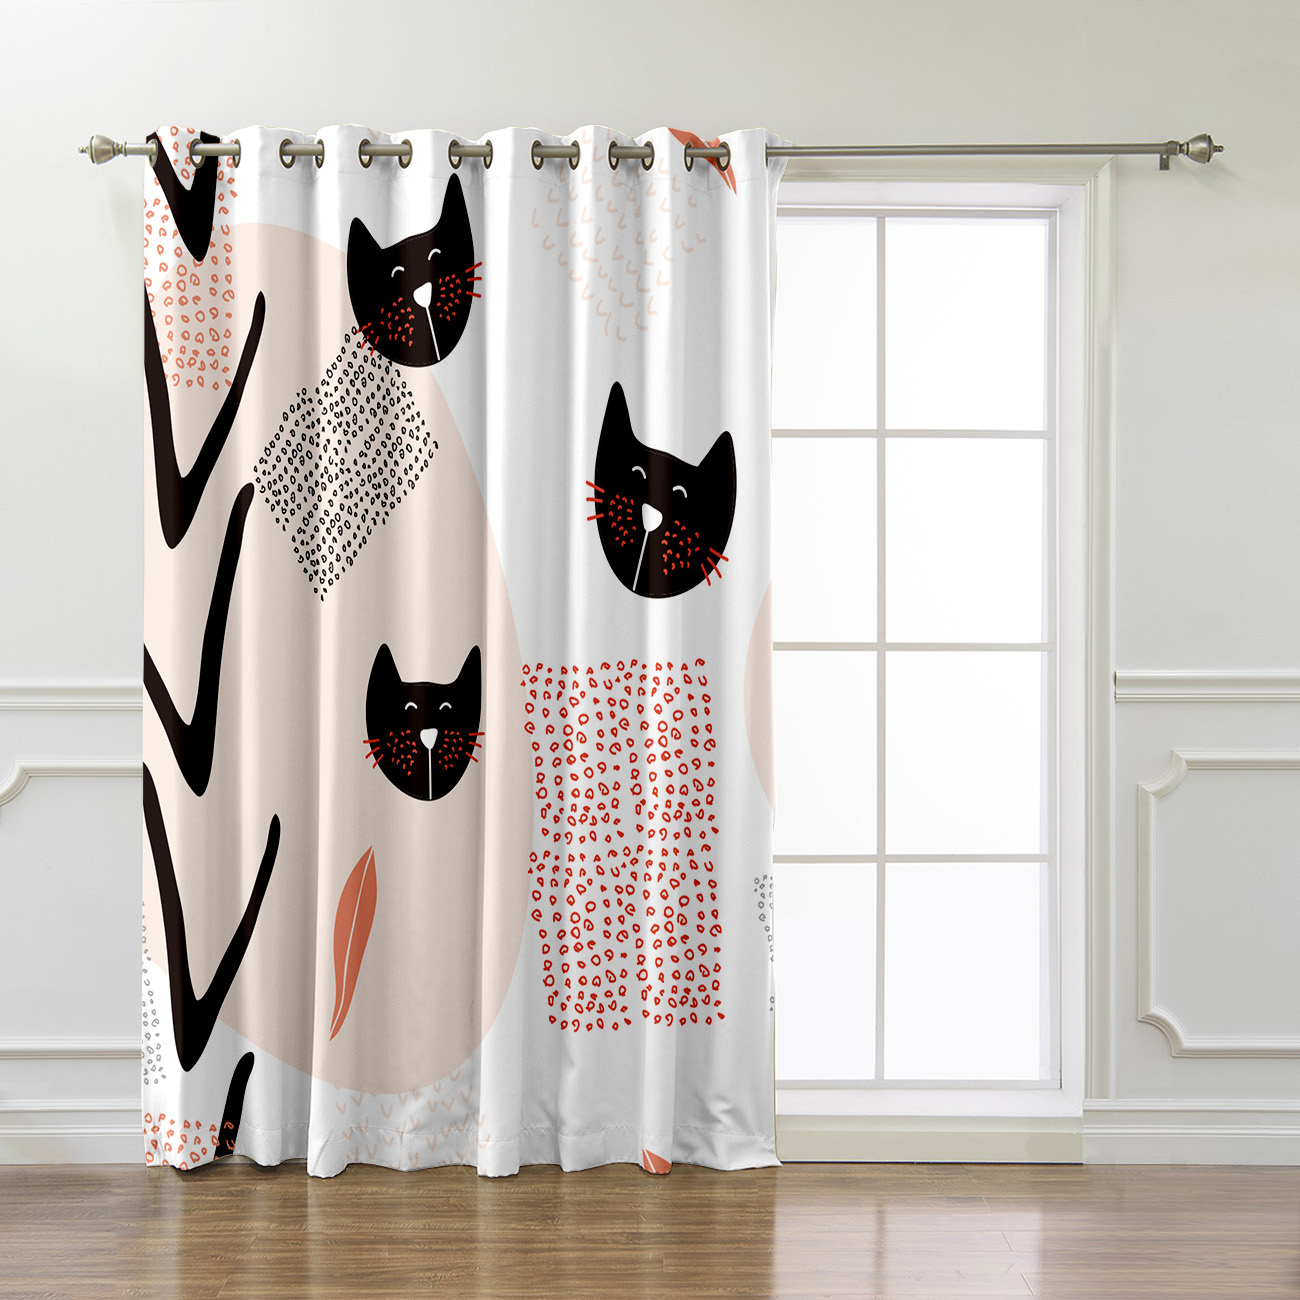 Mordern Kawaii Cat Kitty Nature Window Curtains Dark Curtains